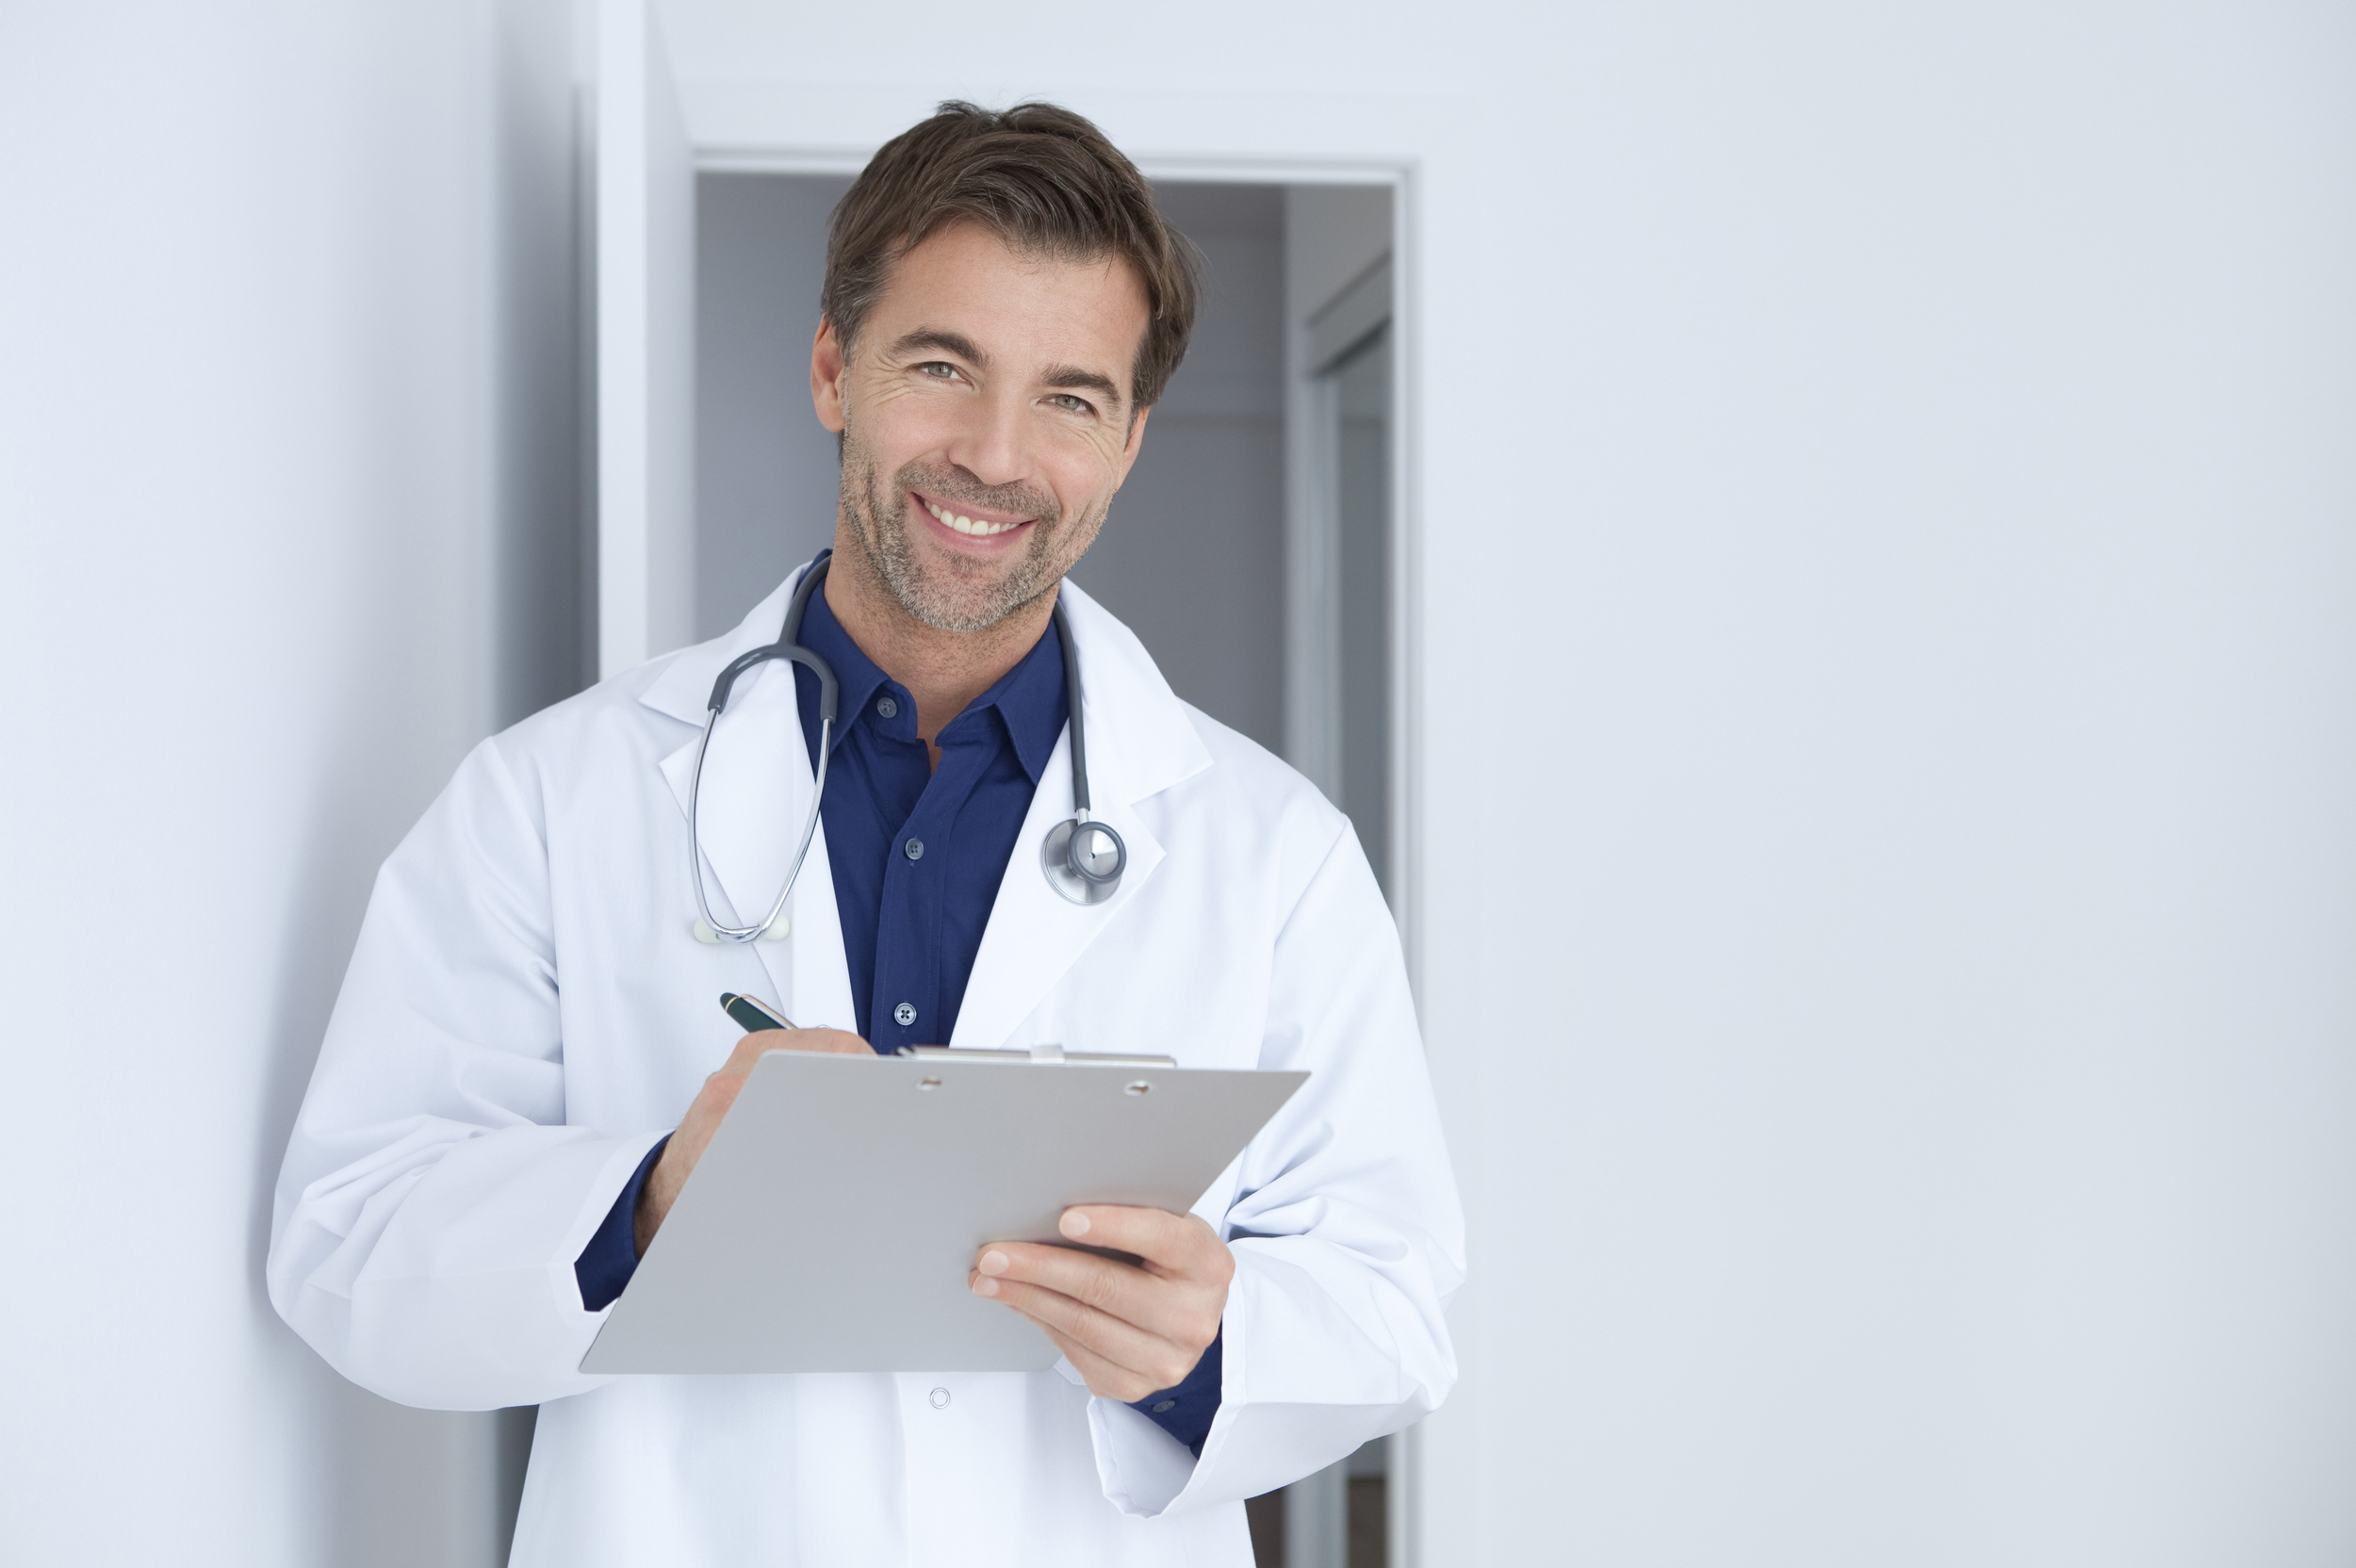 Find weight loss doctor near me